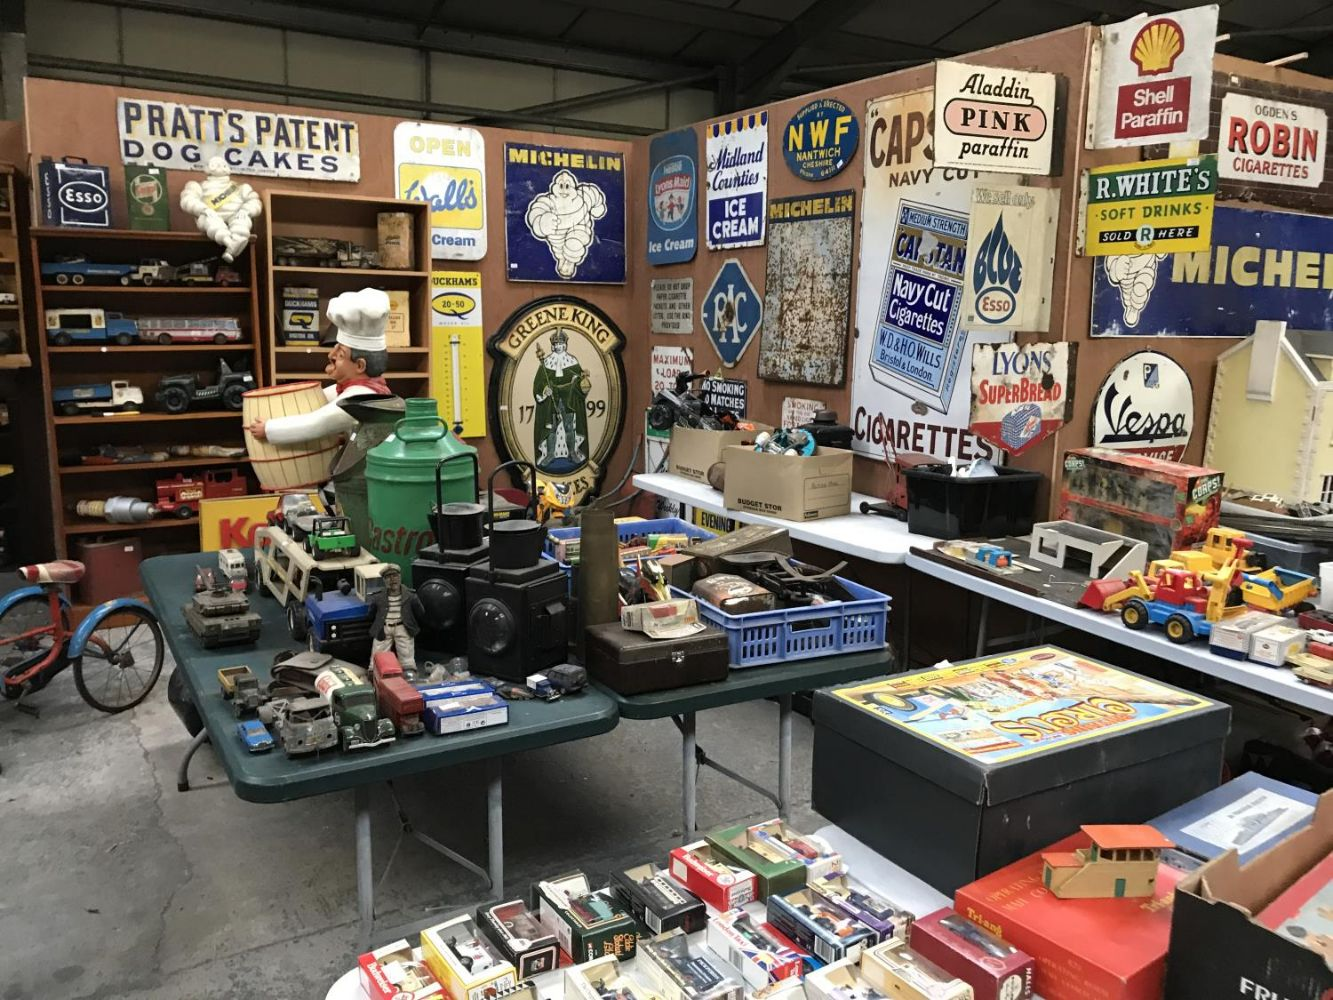 Two Day Auction Of Collectables, Antiques, Furniture, Vintage Items - with a special section for Vintage and Collectable Toys